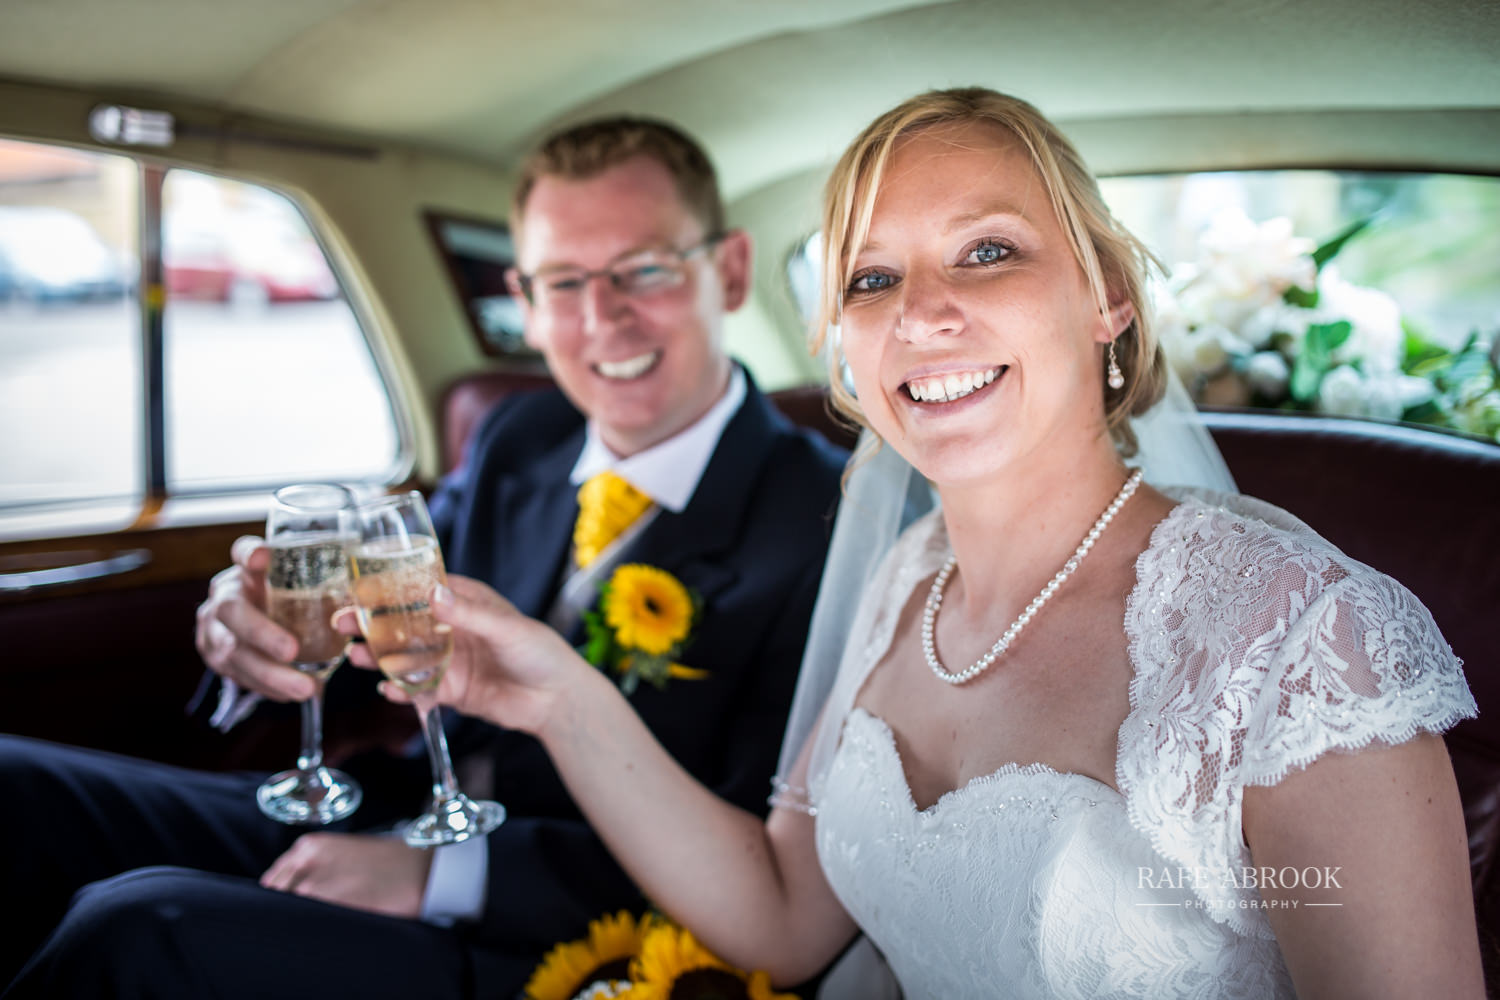 minstrel court wedding royston cambridge hertfordshire wedding photographer-1250.jpg